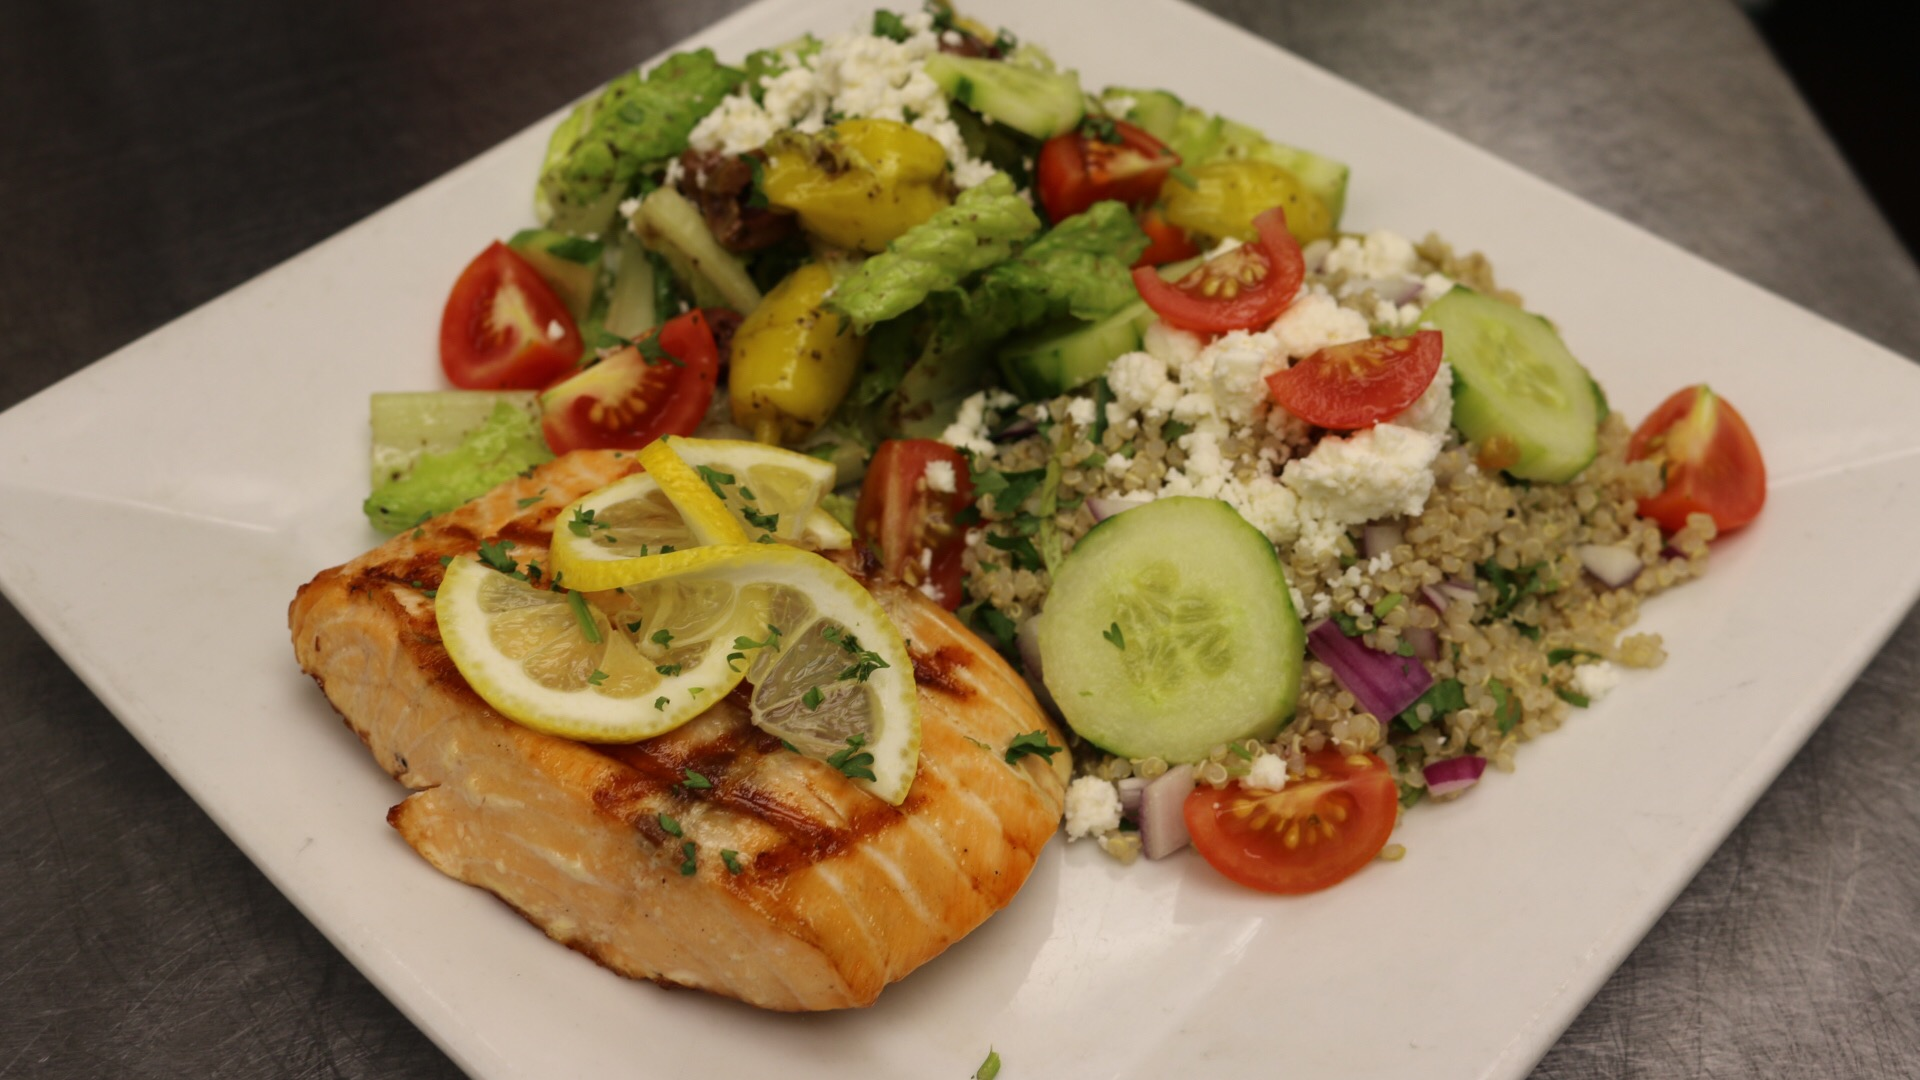 Salmon with a greek side salad